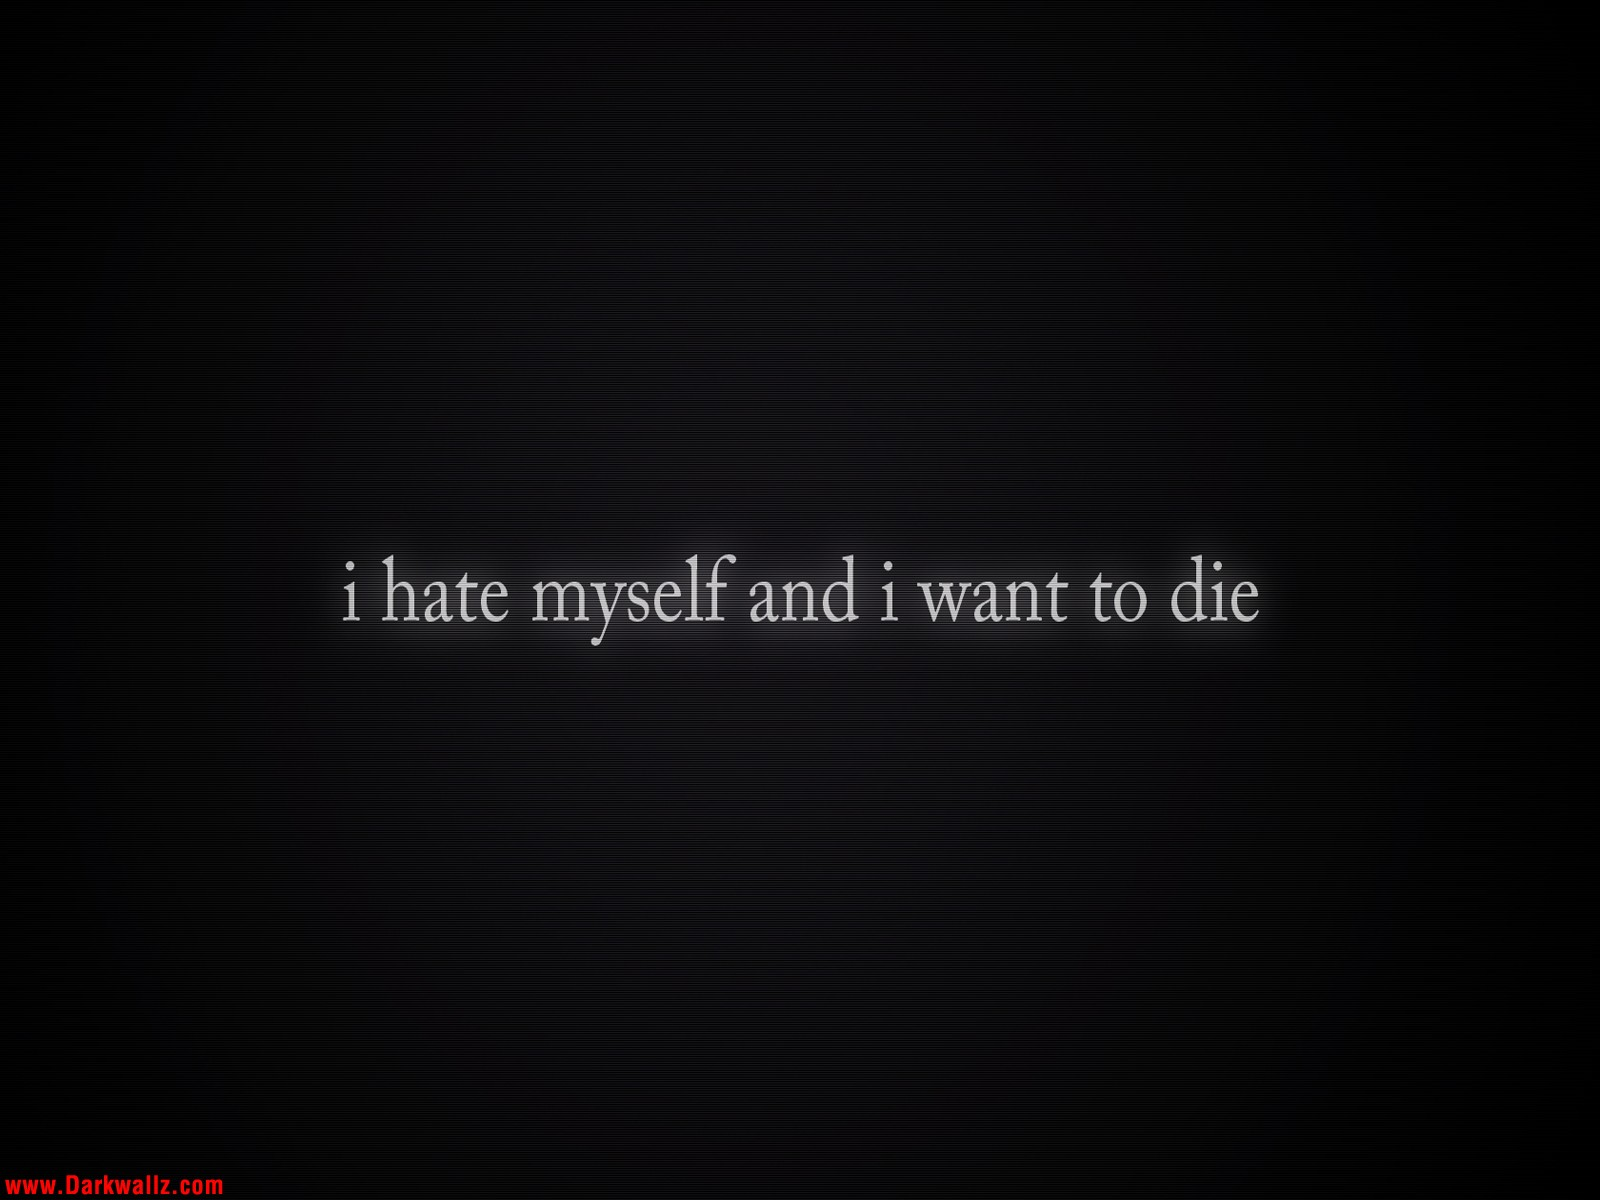 depression tumblr backgrounds - photo #19